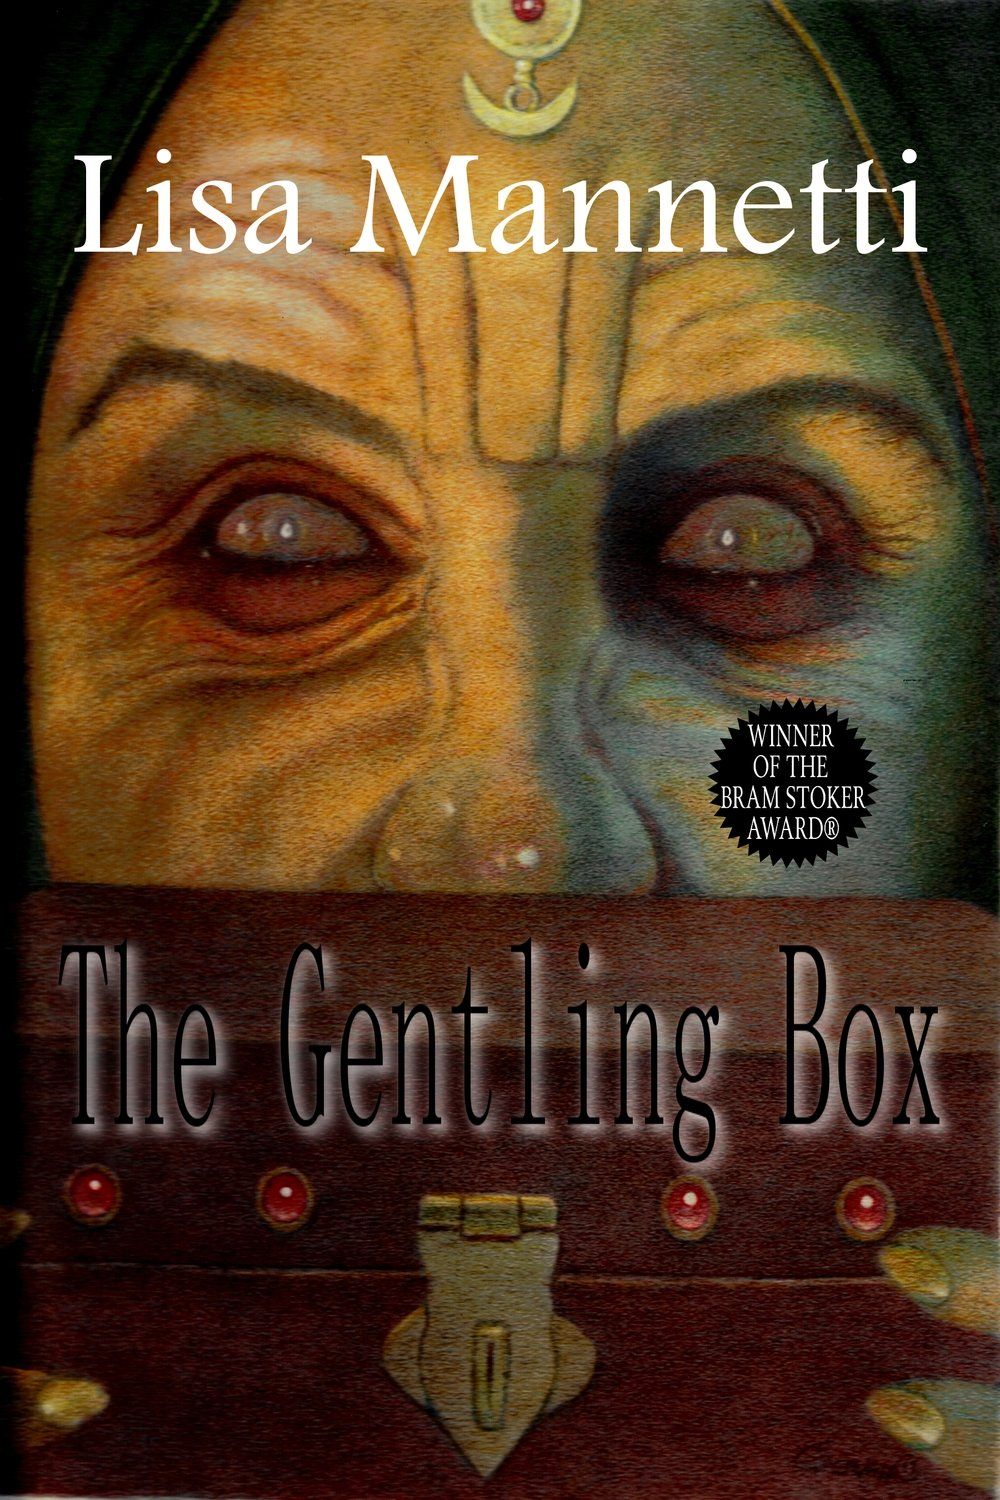 The Gentling Box by Lisa Mannetti